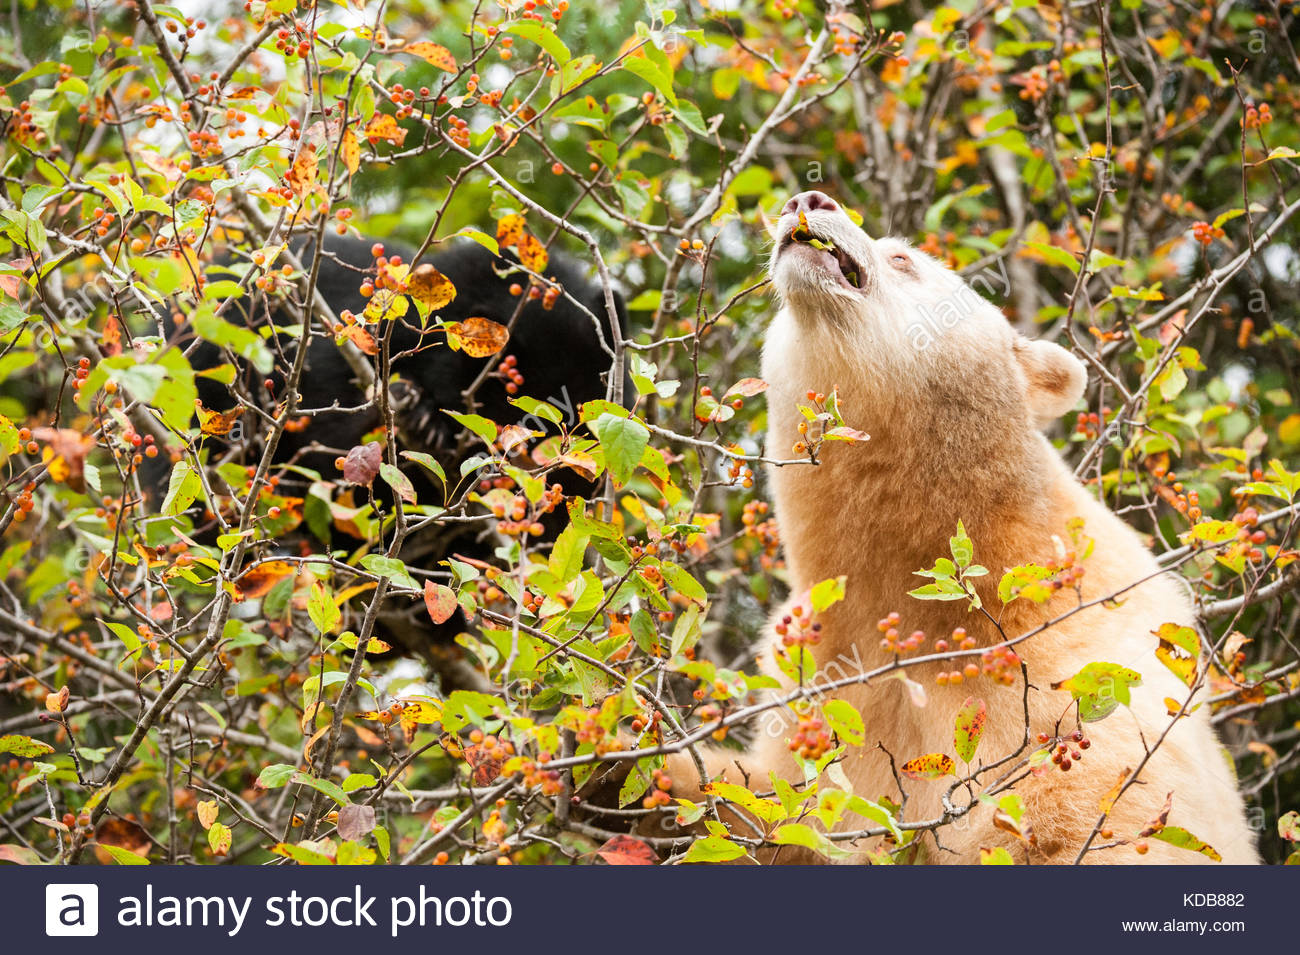 A mother spirit bear, Ursus americanus kermodei, grazes with her cub on ripe crabapples in the fall. - Stock Image